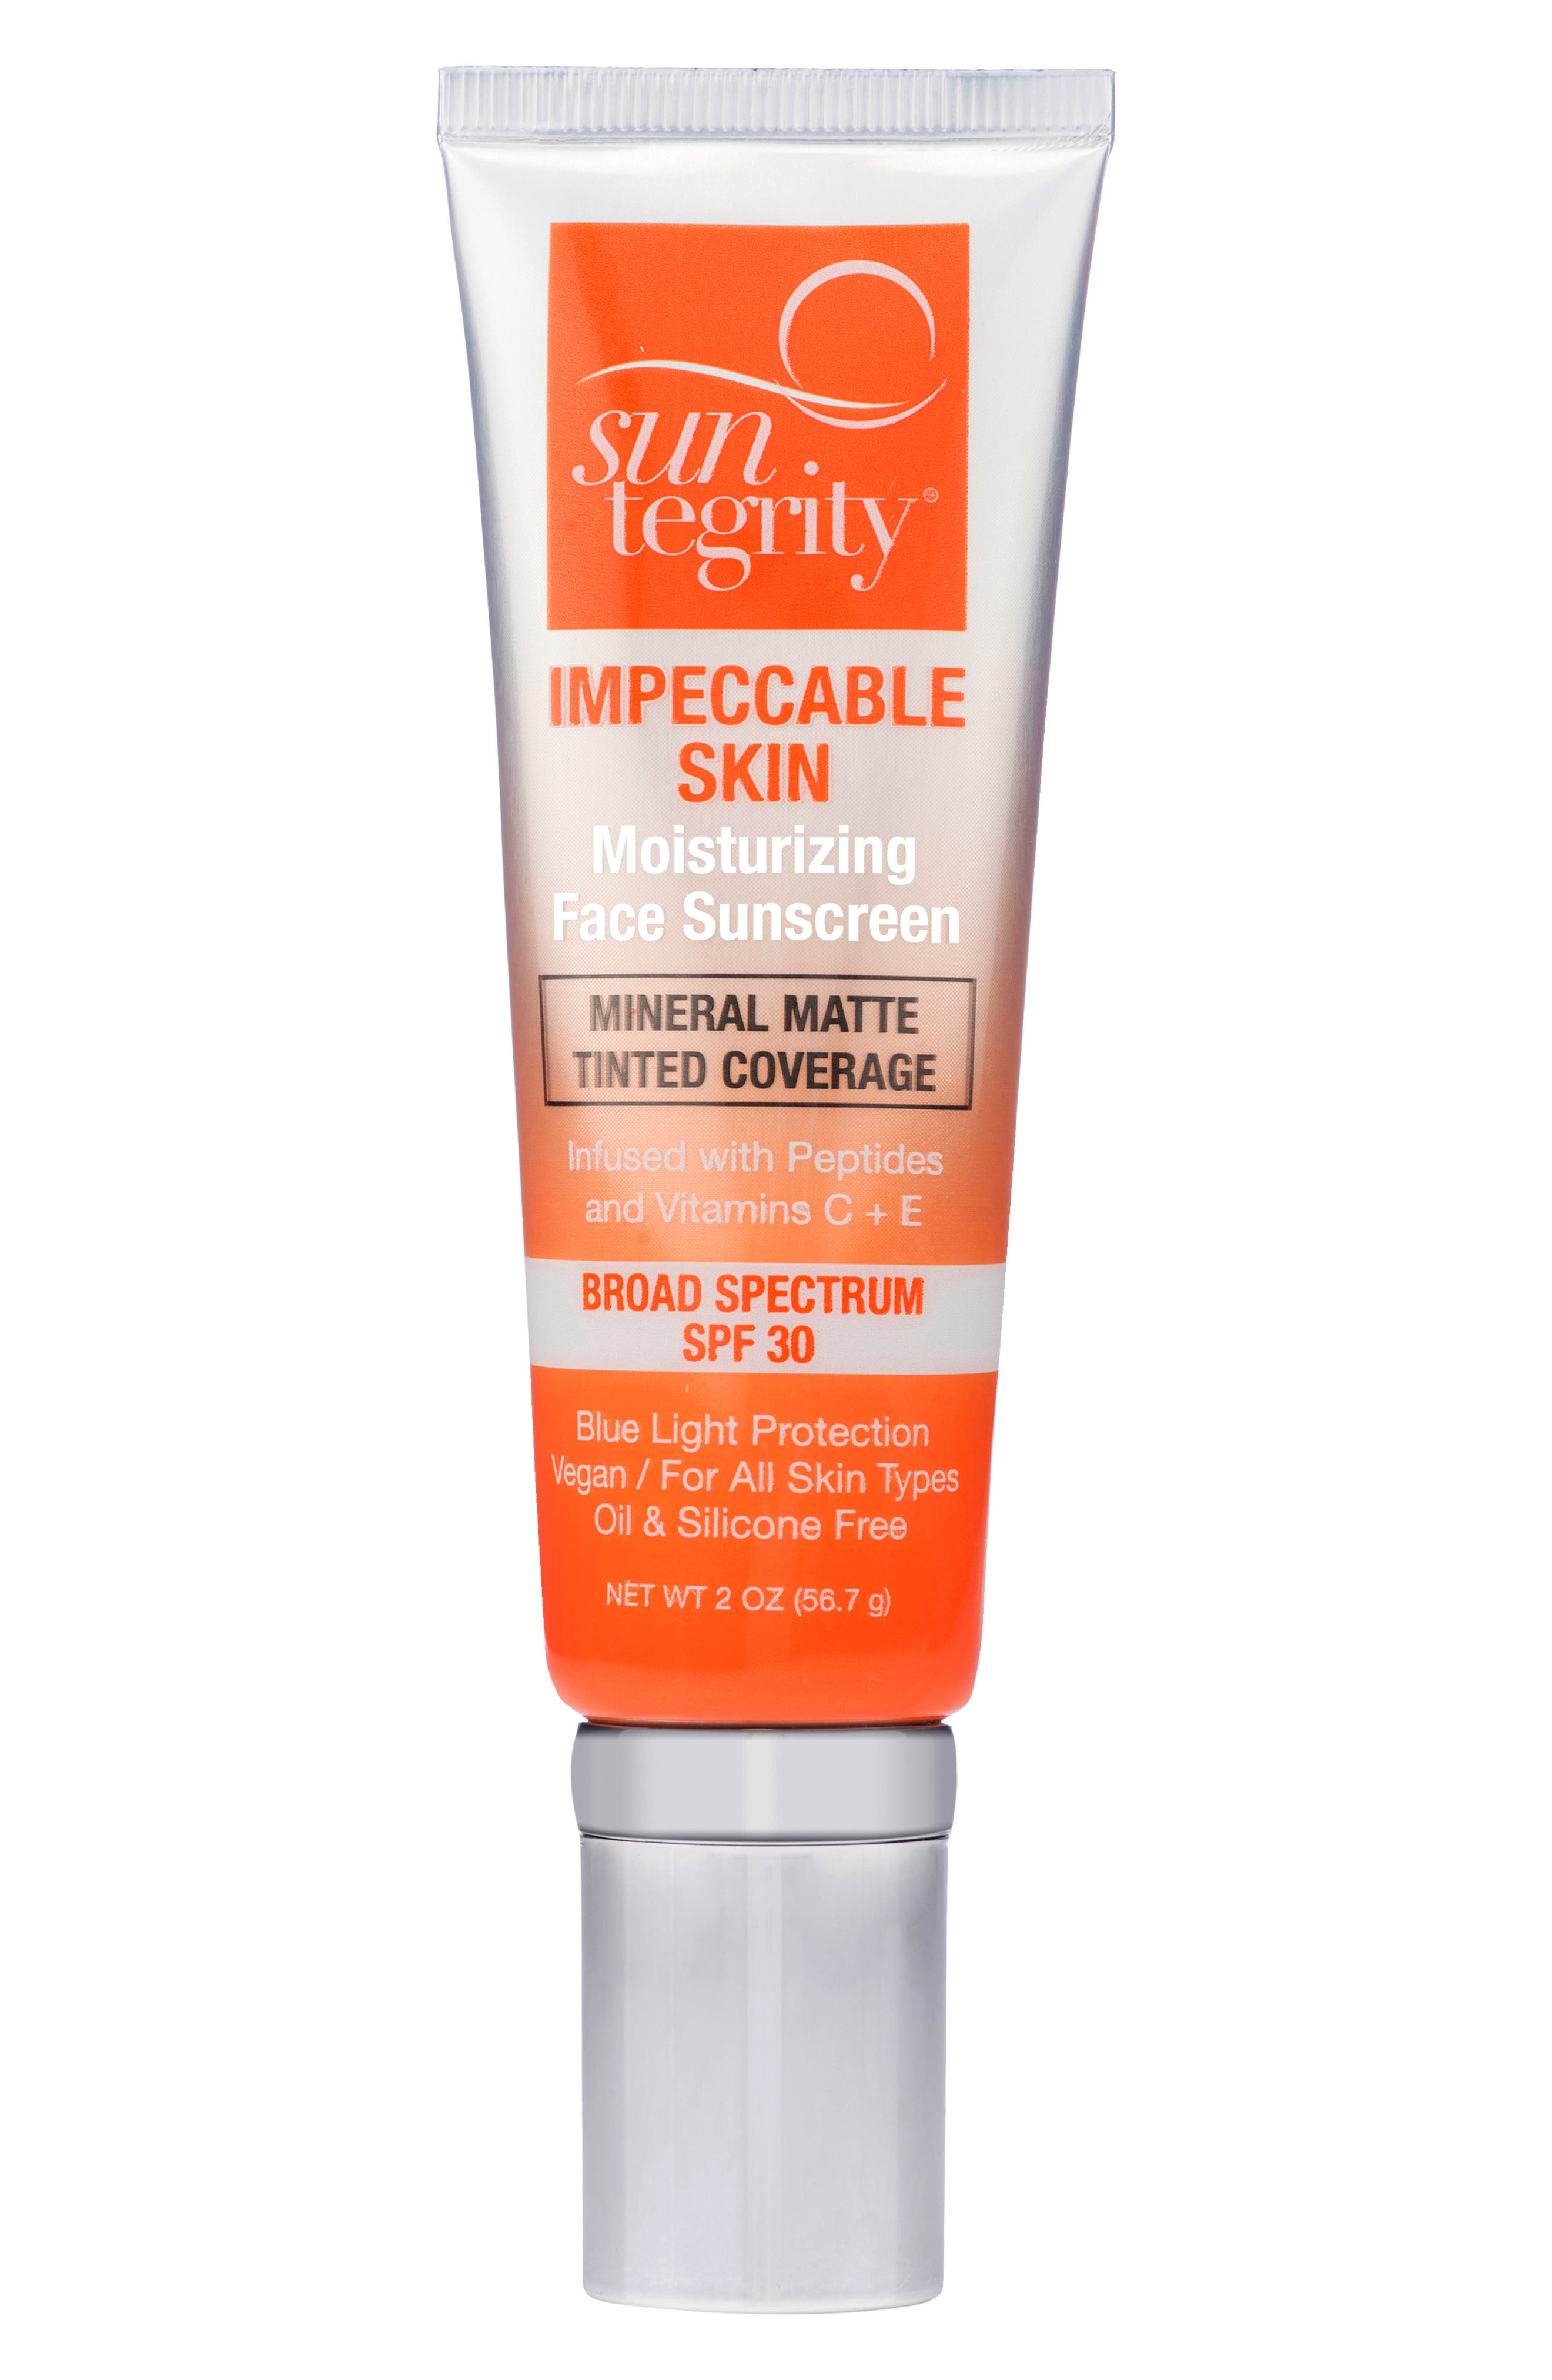 Impeccable Skin Moisturizing Face Sunscreen   Nordstrom